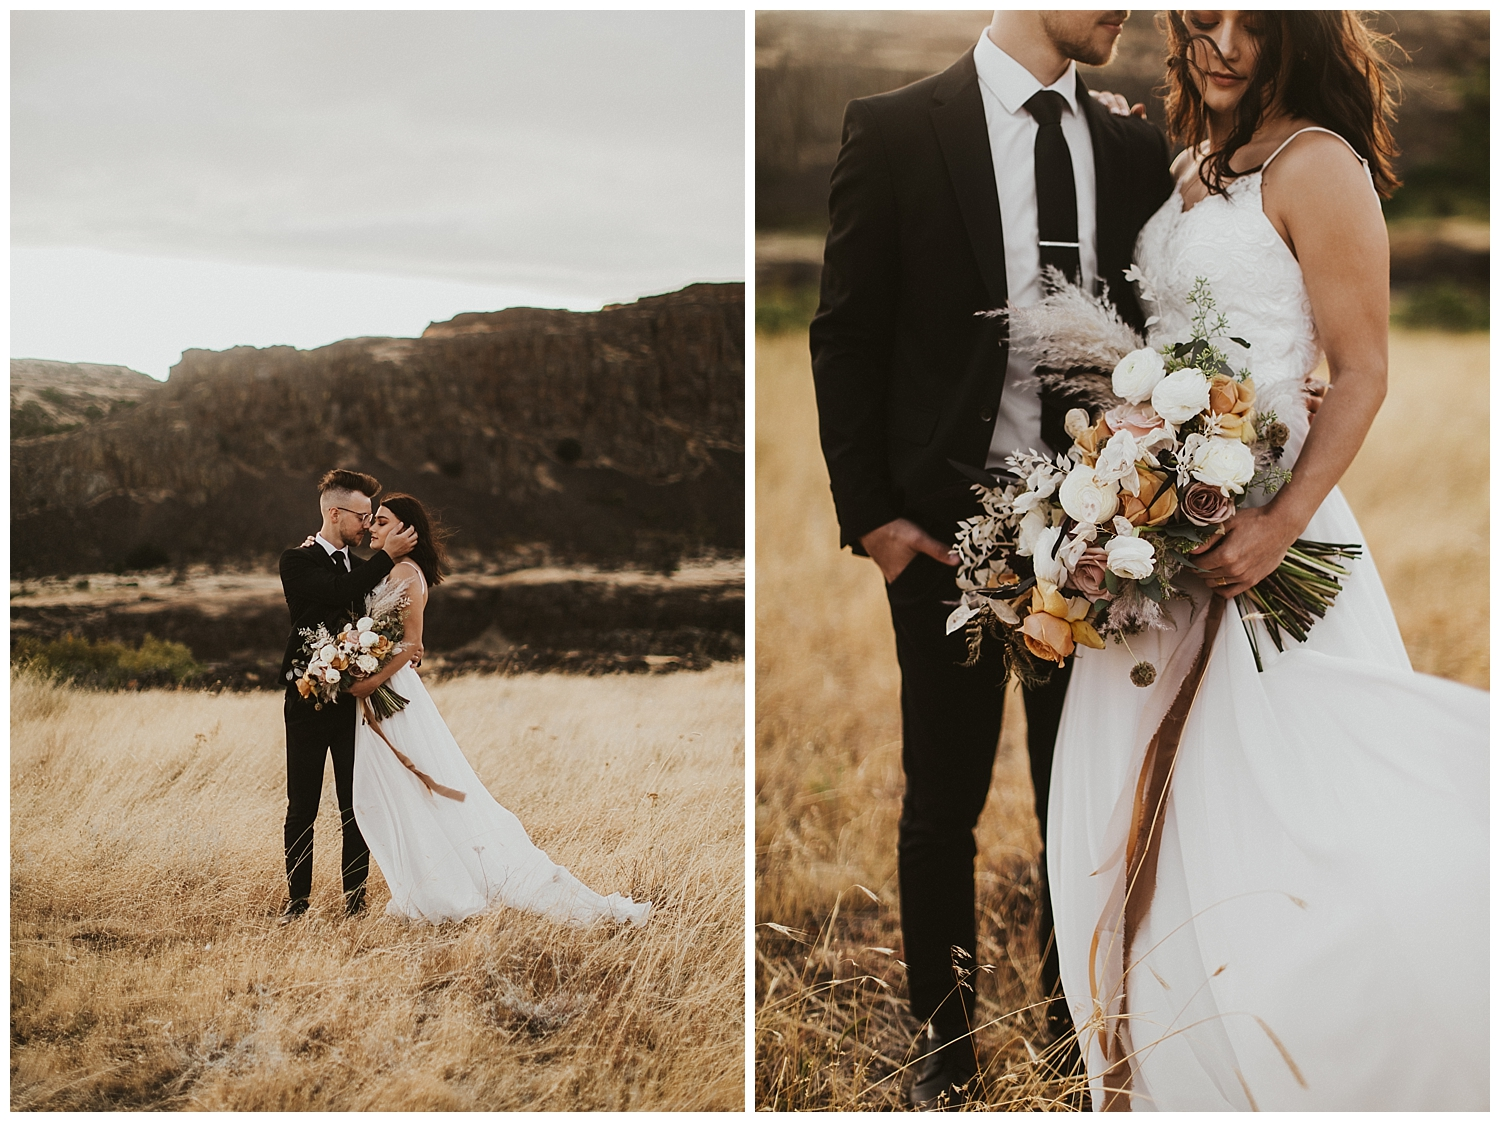 a bride and groom stand together in the desert, her dress and the ribbon on her bouquet blowing in the wind